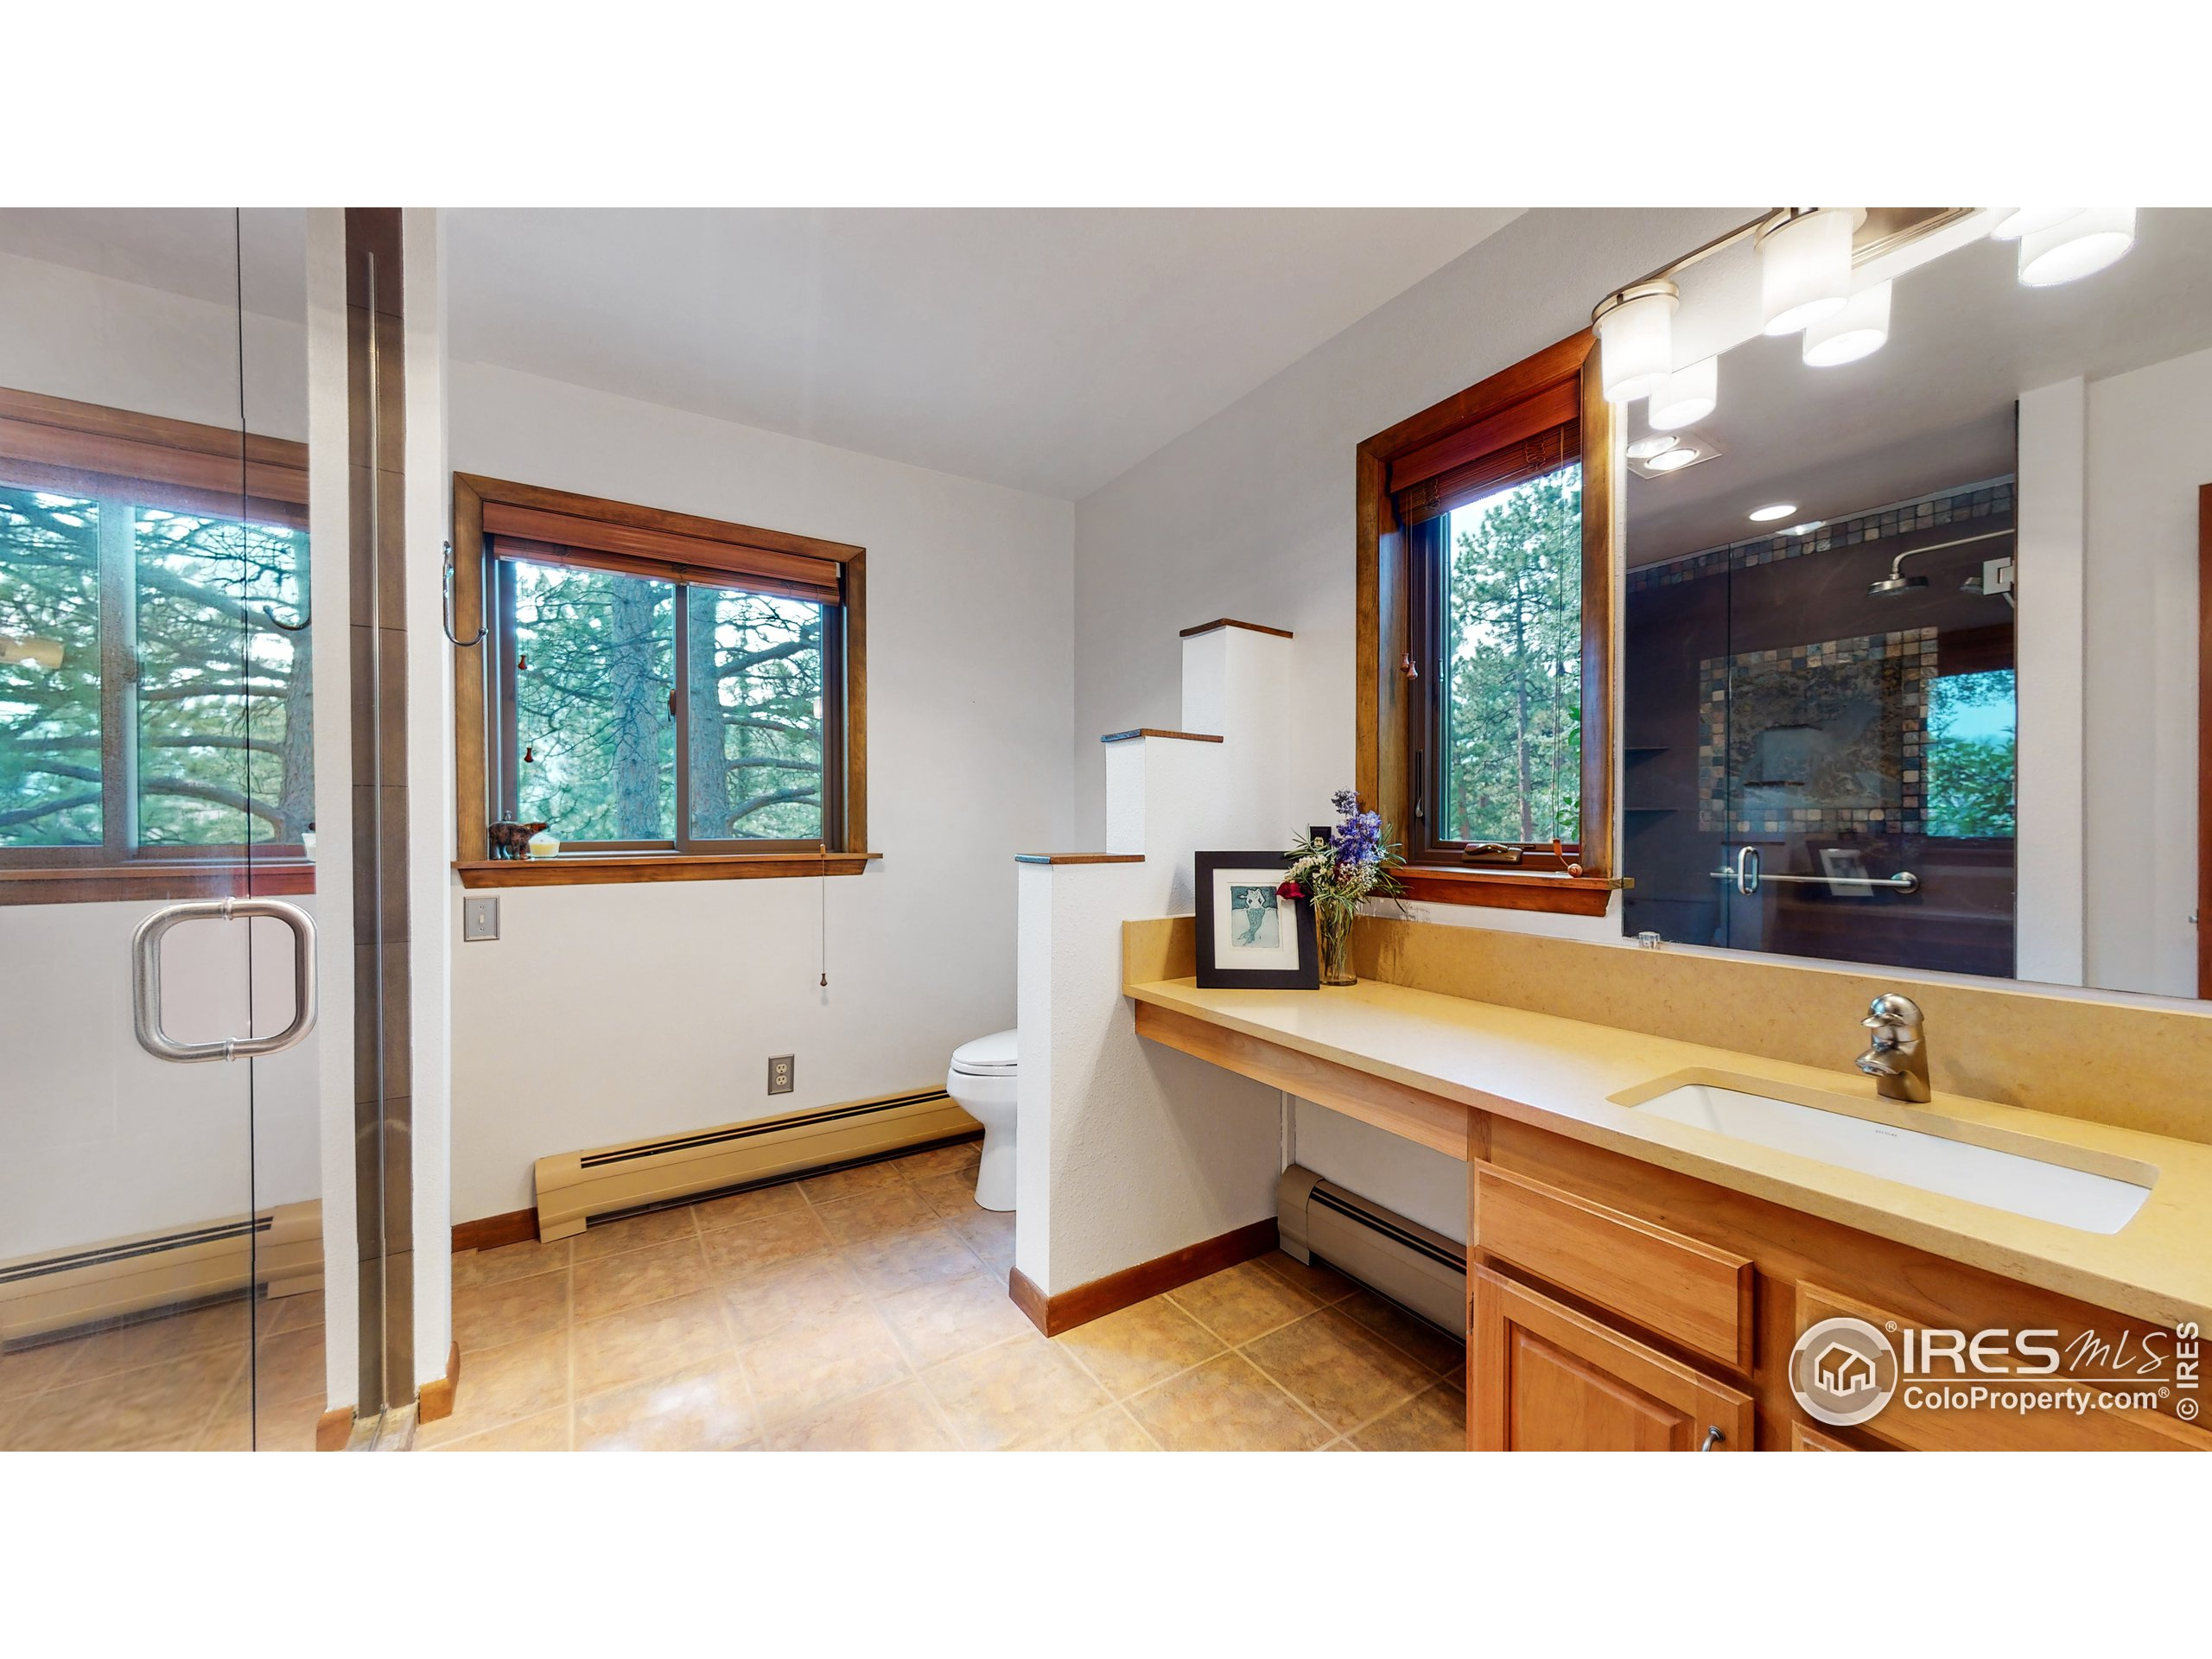 Could be used as office, family room, bedroom - the choice is yours.